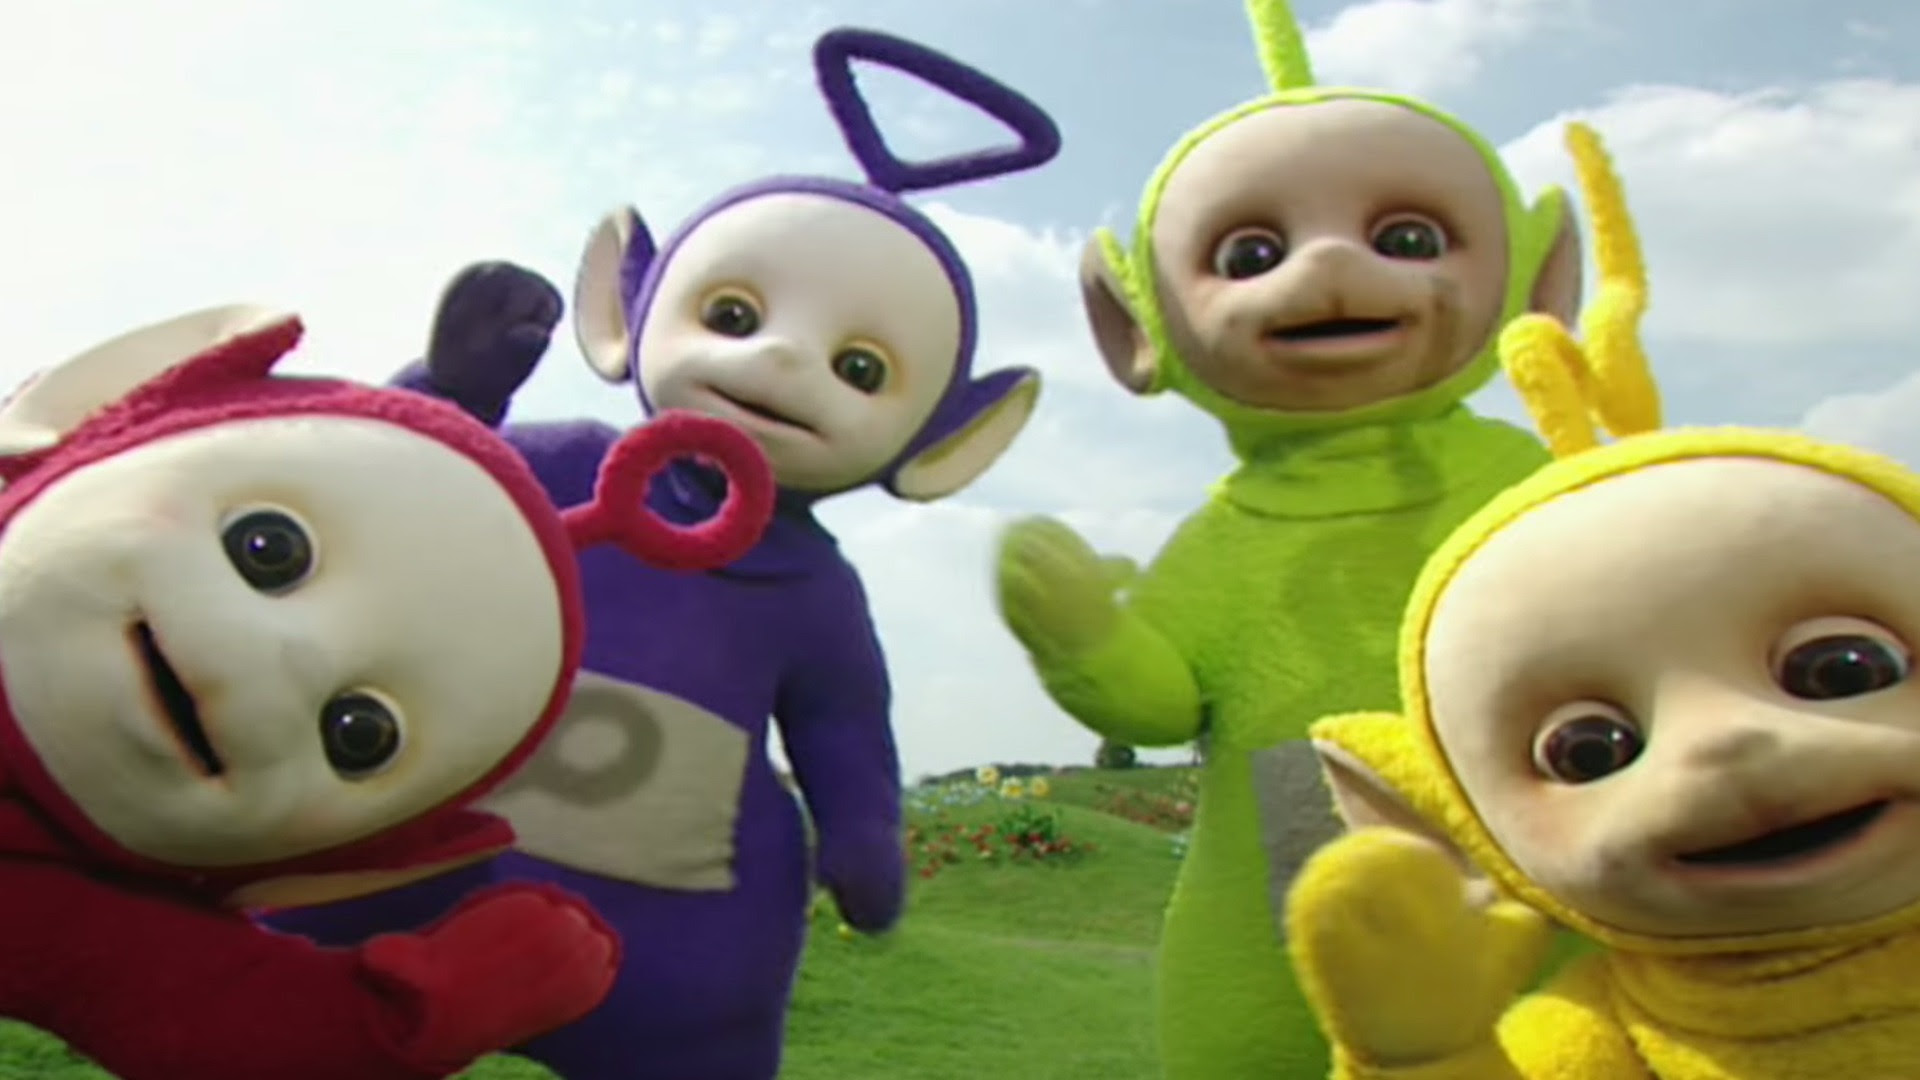 Man in Teletubby costume breaks into home, steals leftover Chinese food